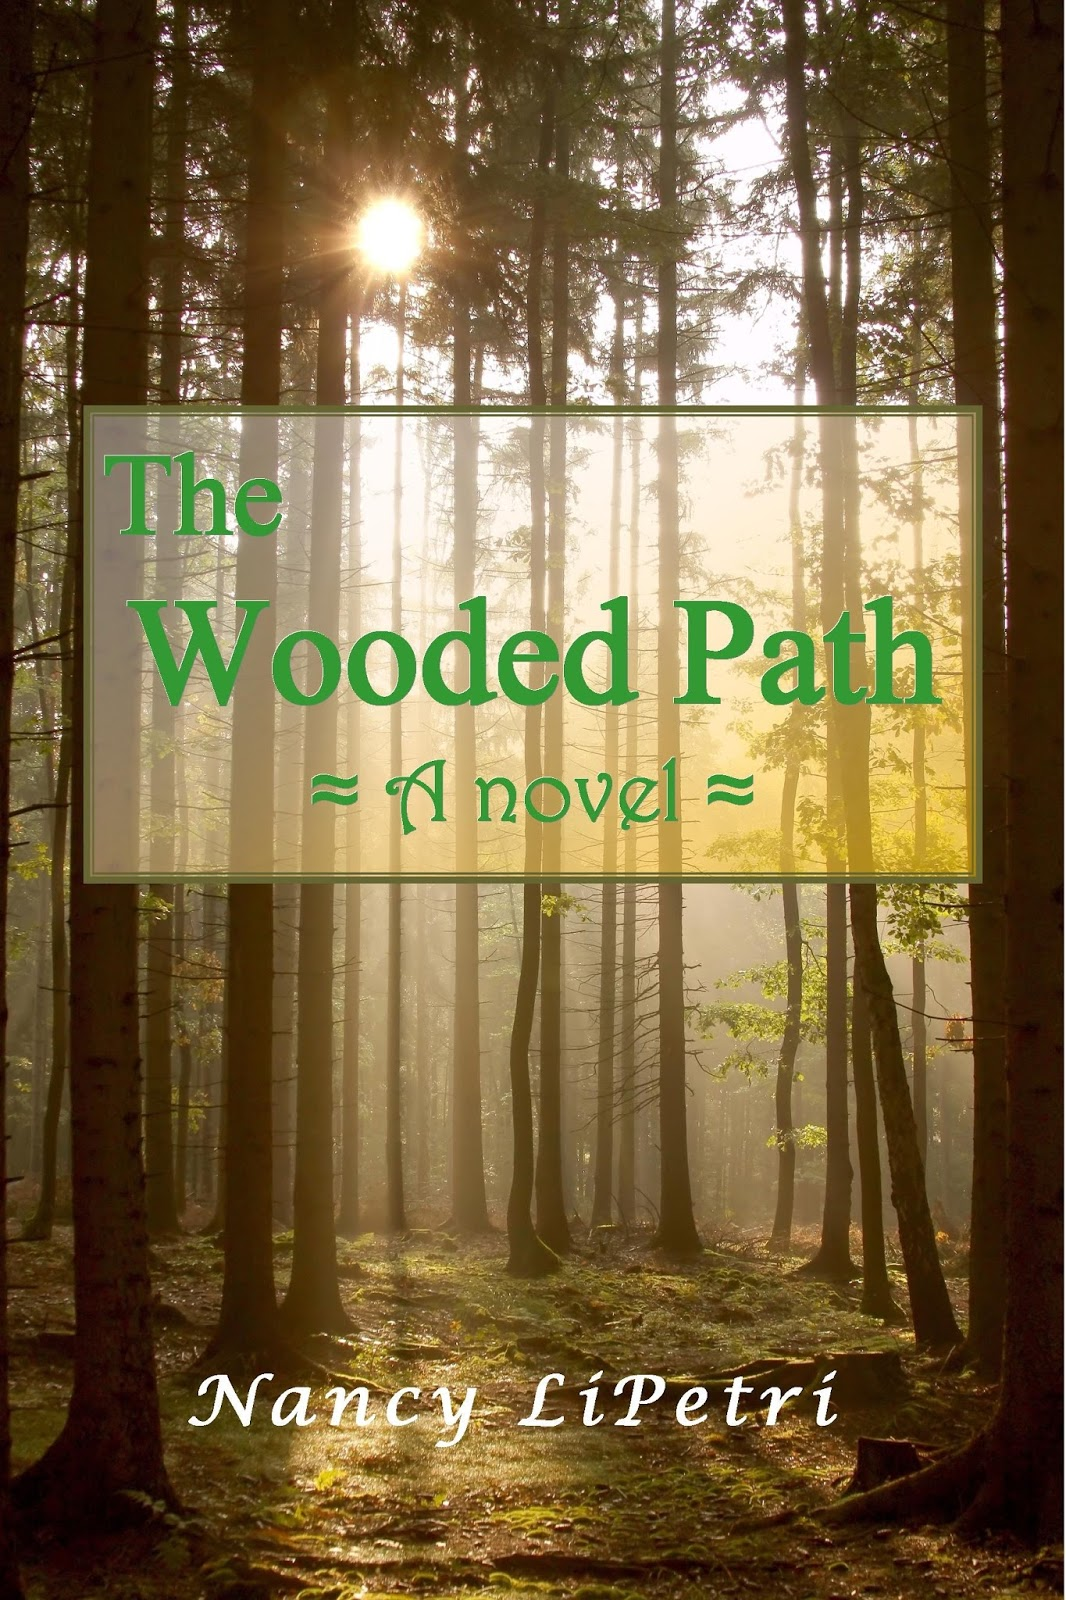 Why Men As Well Women Are Taking The Wooded Path By Nancy LiPetri